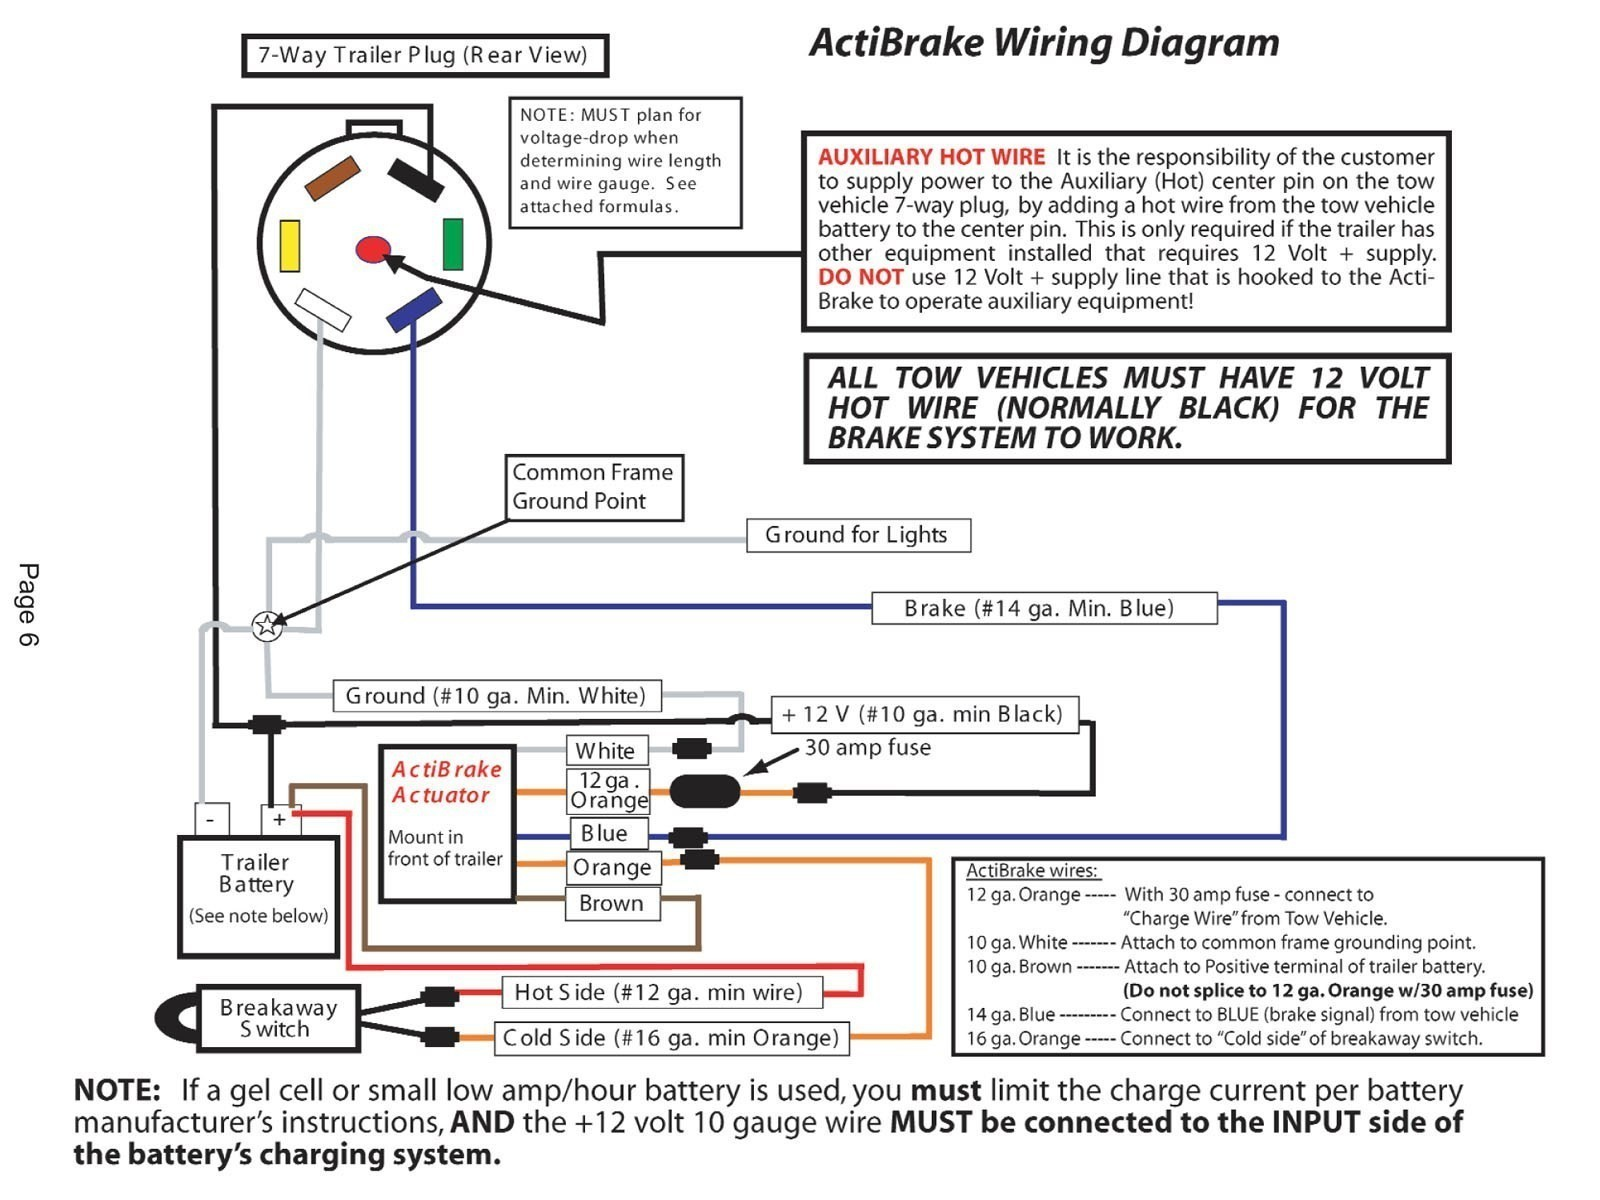 Trailer Breakaway Switch Wiring Diagram Wiring Diagram for Redarc Electric Brake Controller Valid Wiring